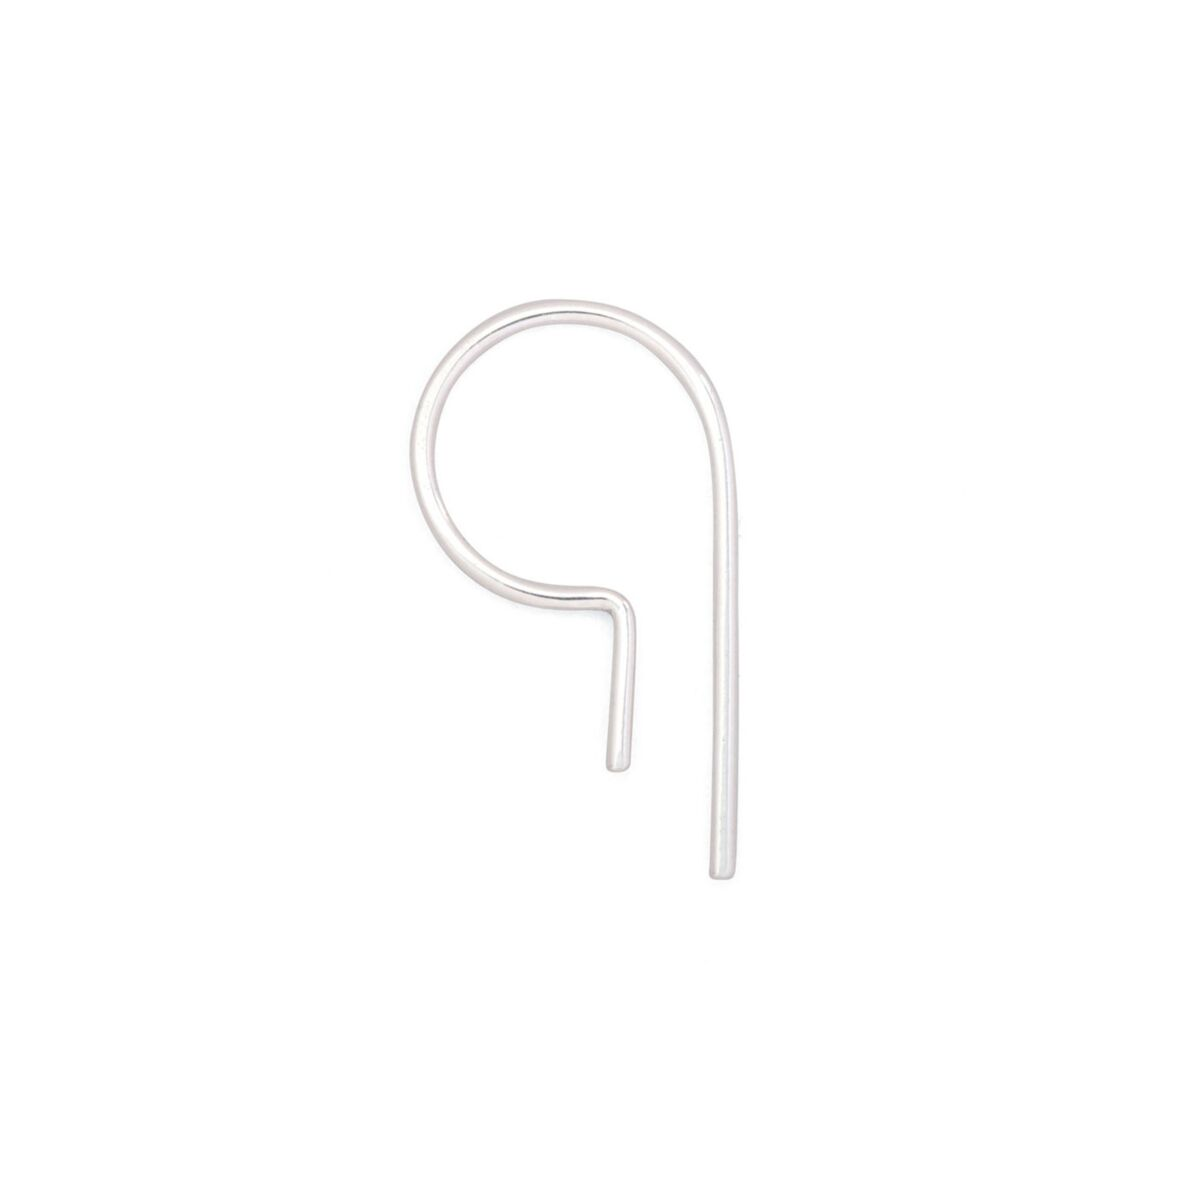 Loopdie Earring Silver (SINGLE)